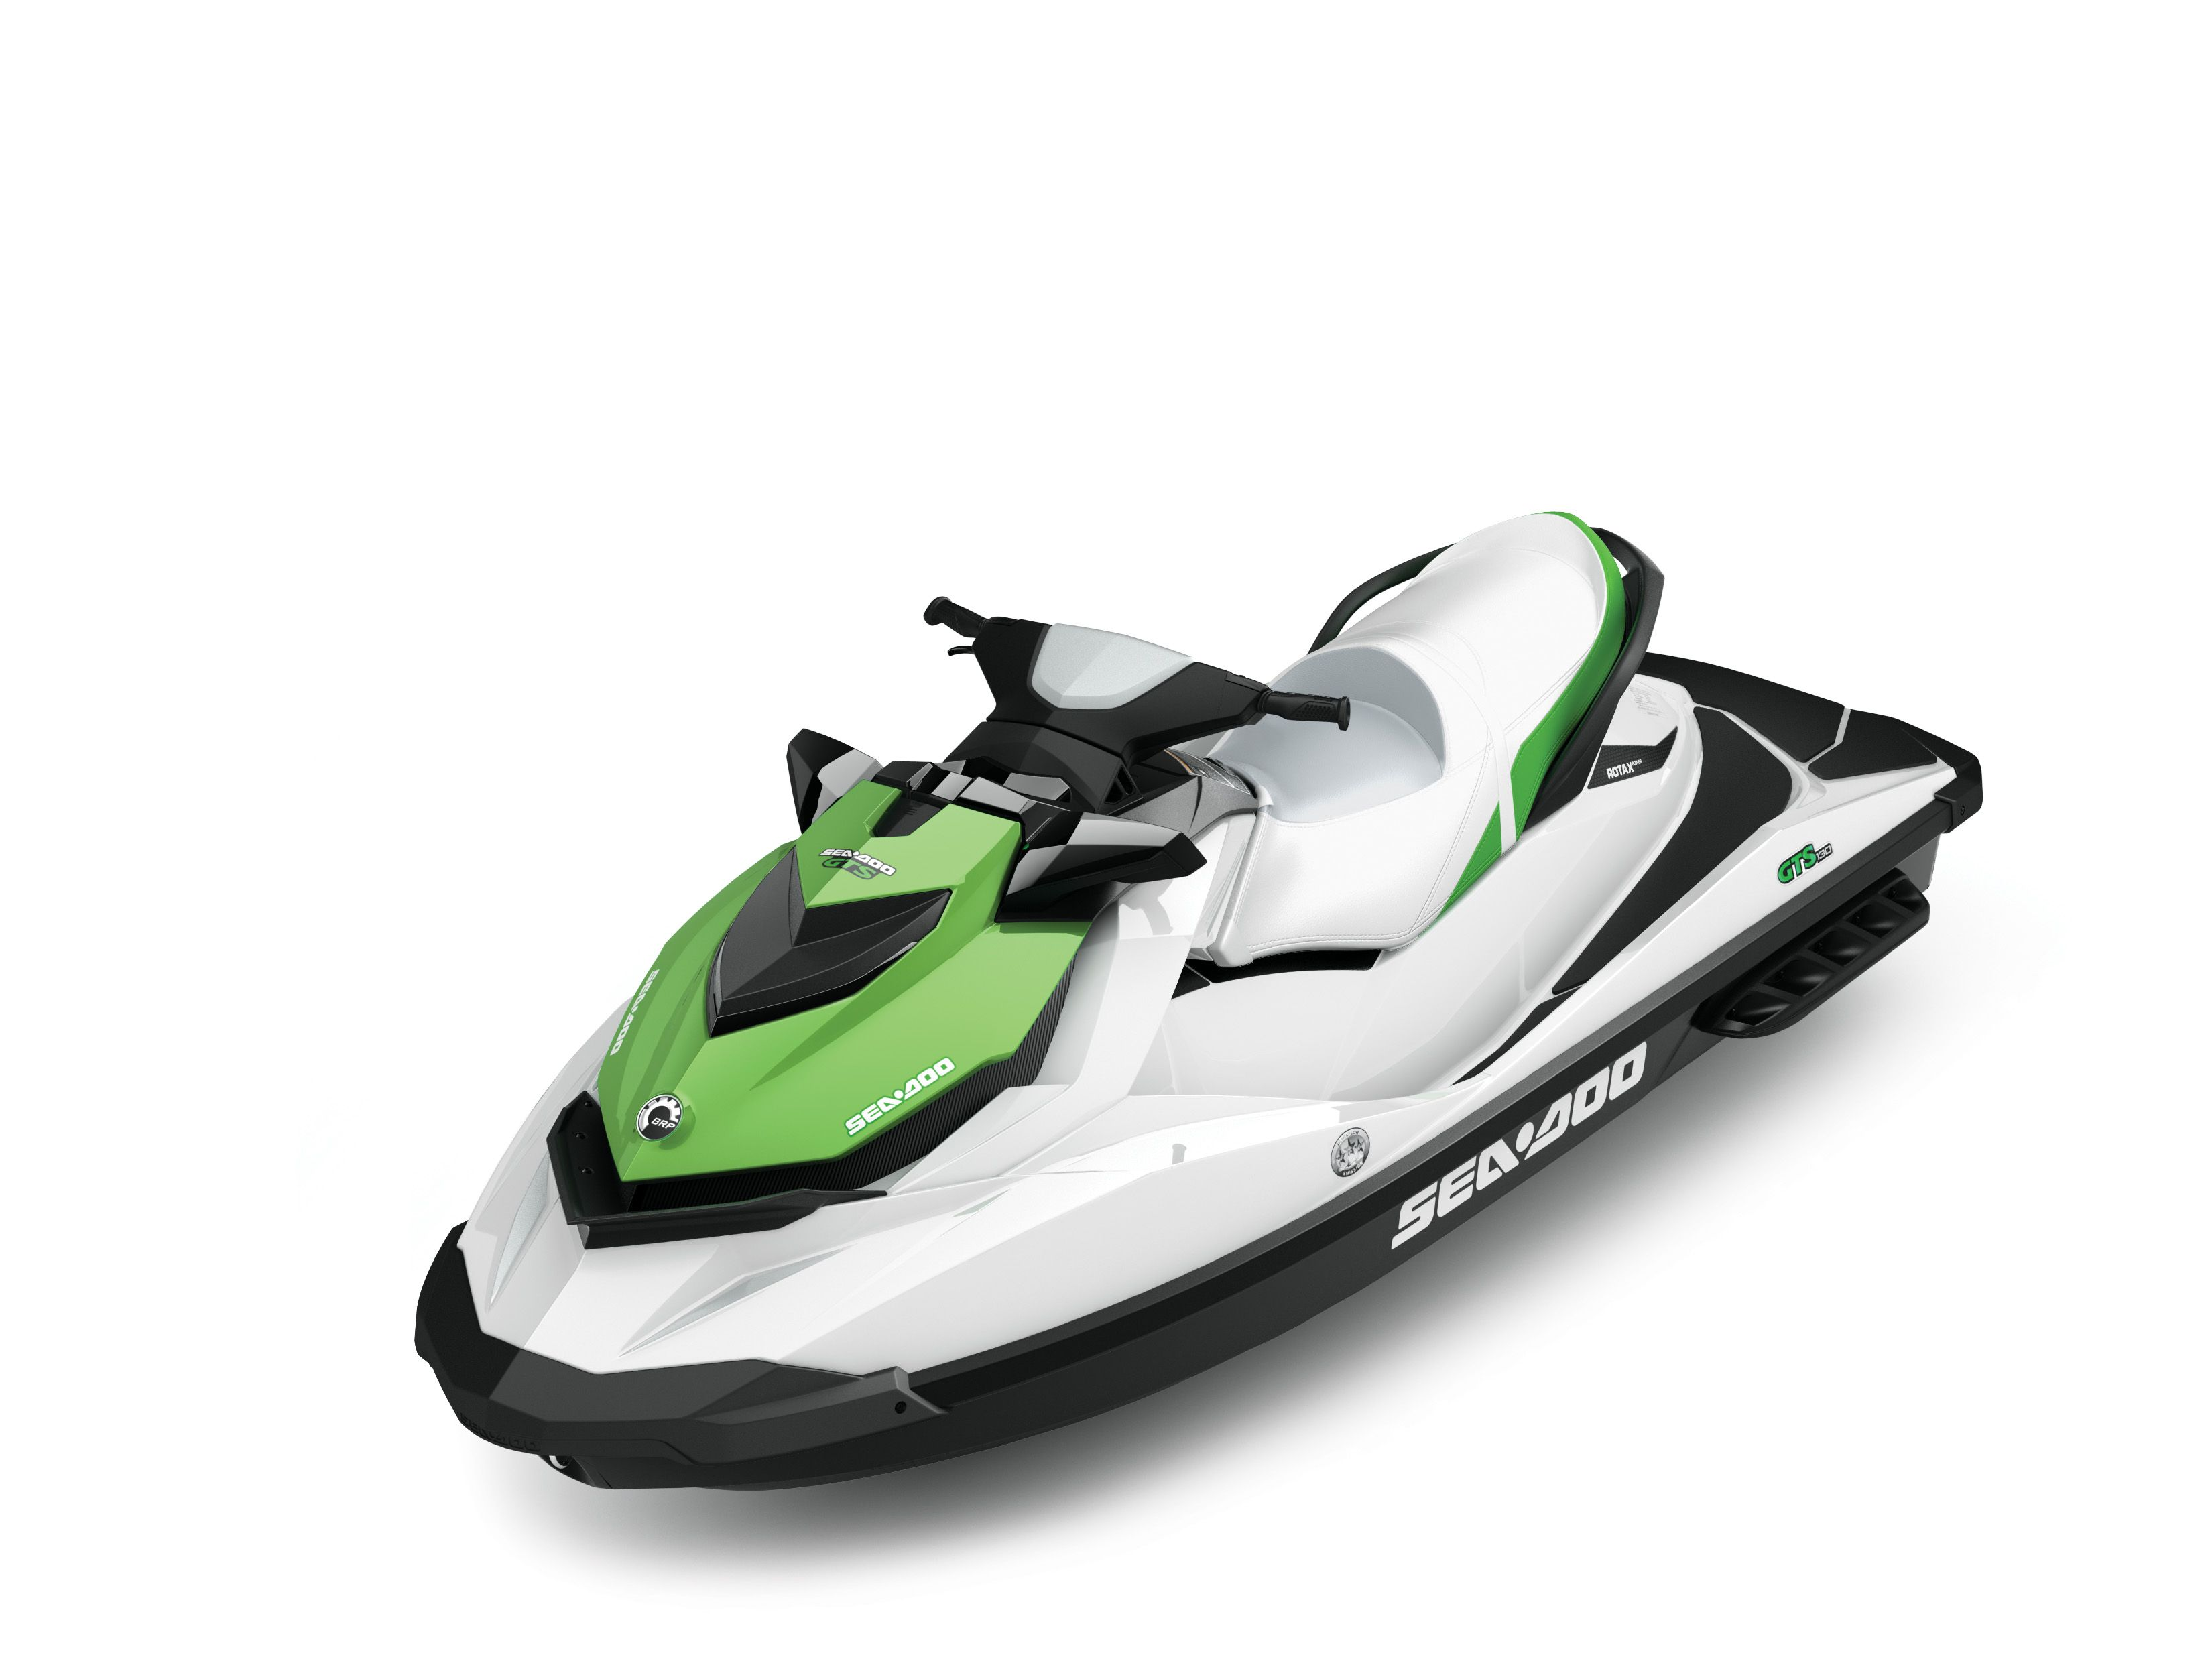 2014 Sea Doo Gts 130 Enjoy More Standard Features Usually Found